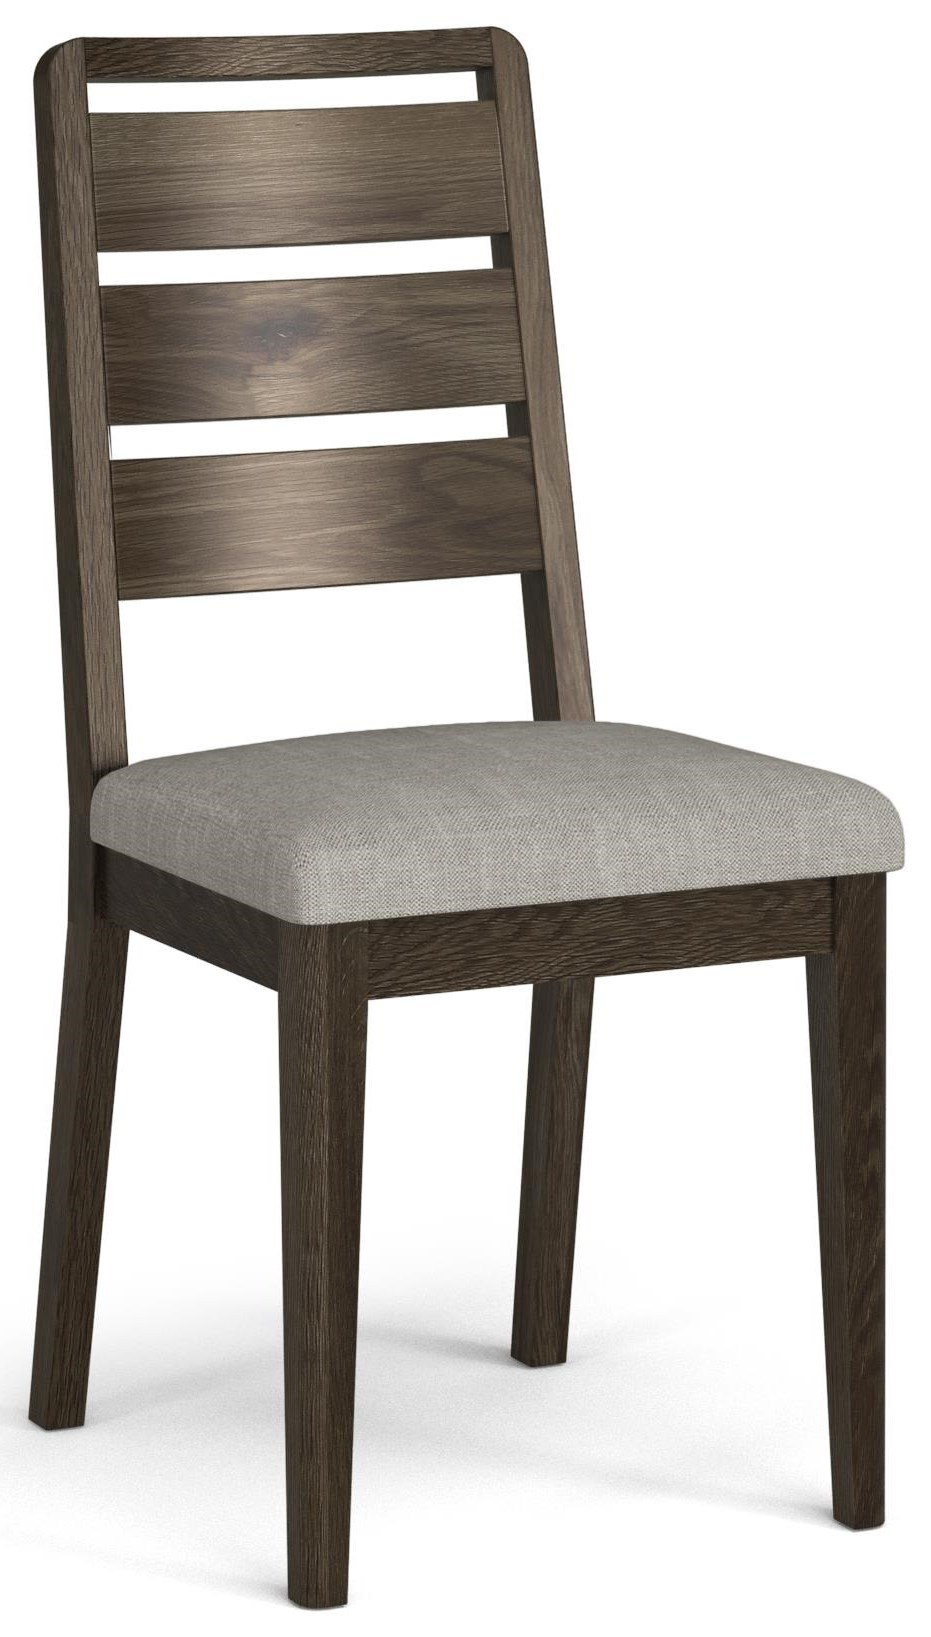 Amherst Dining Chair by Global Home at Red Knot